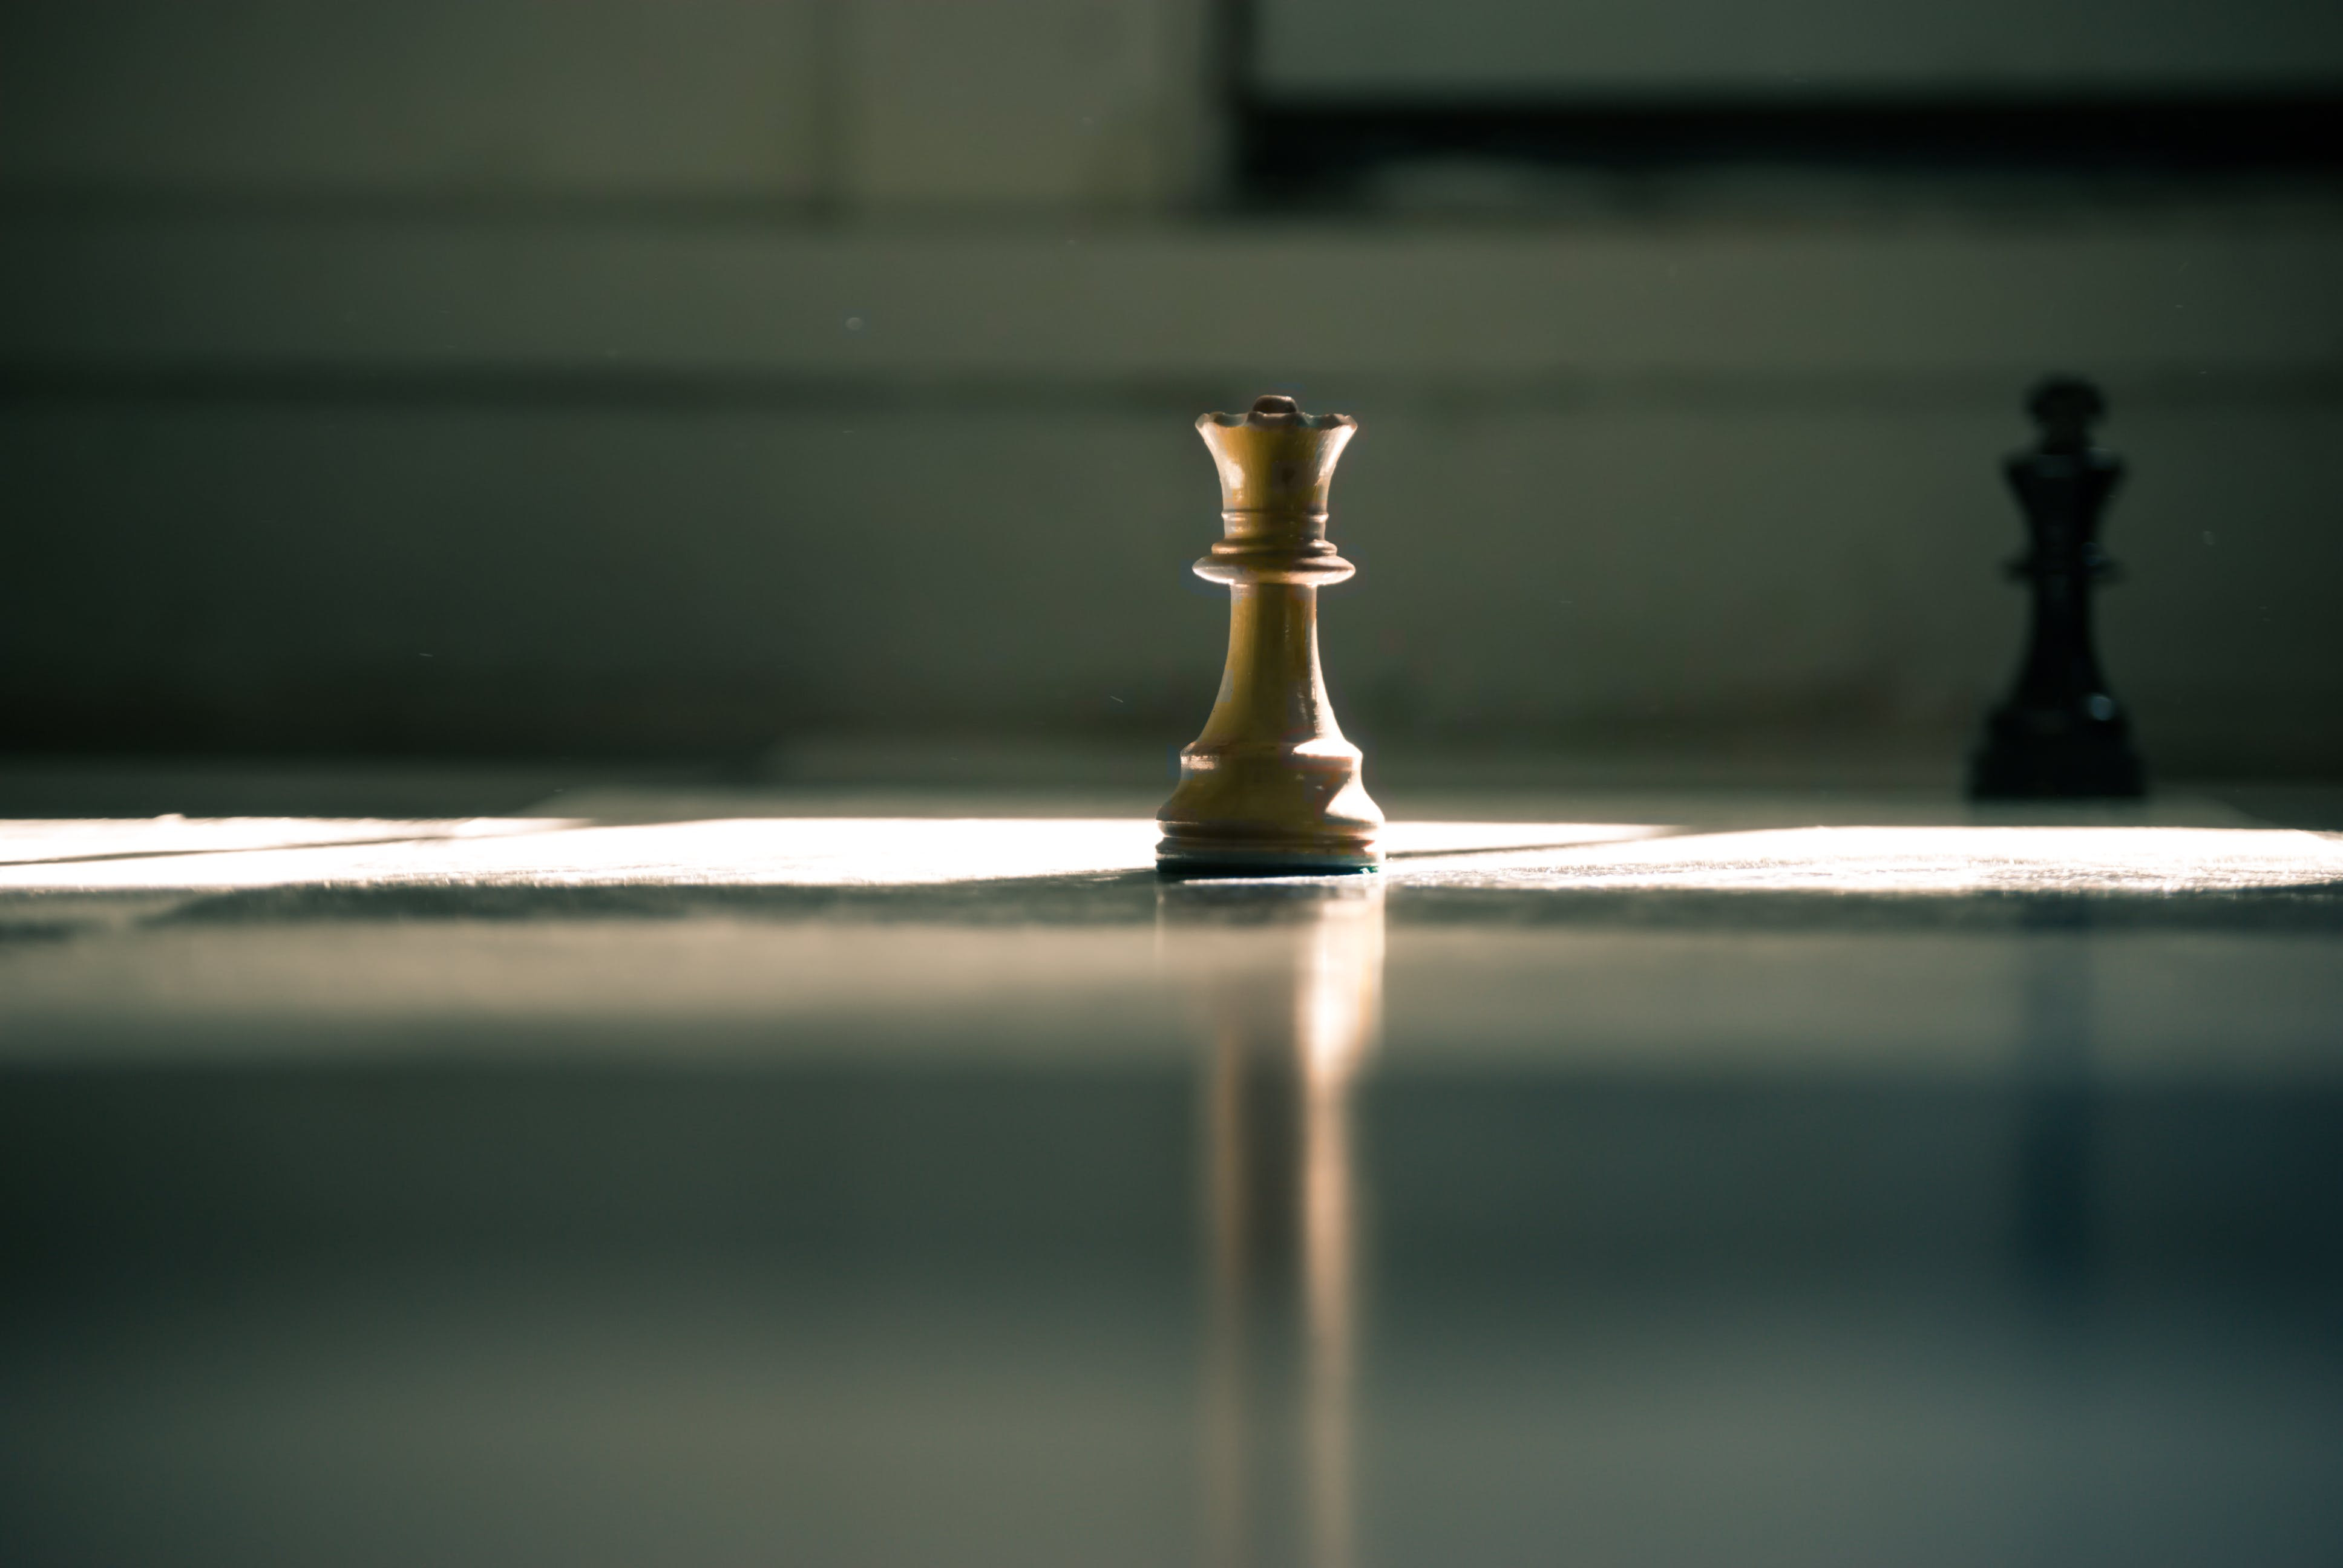 Brown Queen Chess Piece